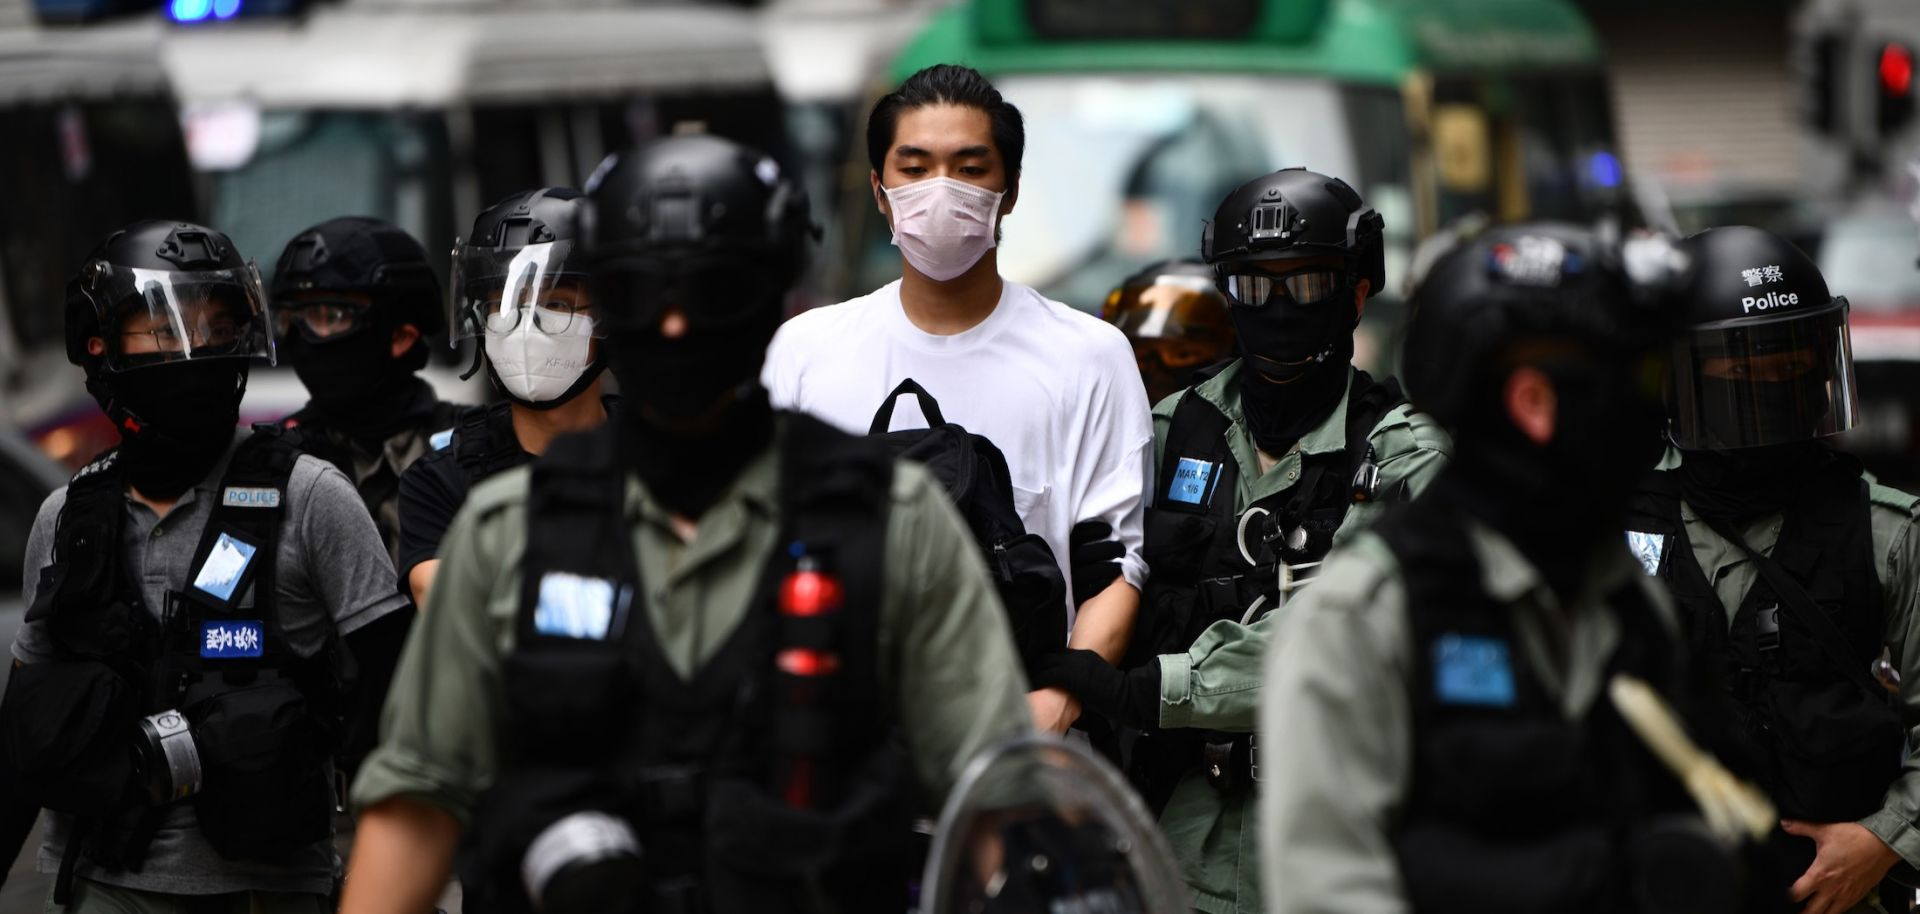 A man is detained by riot police in downtown Hong Kong during a pro-democracy demonstration on May 27, 2020.